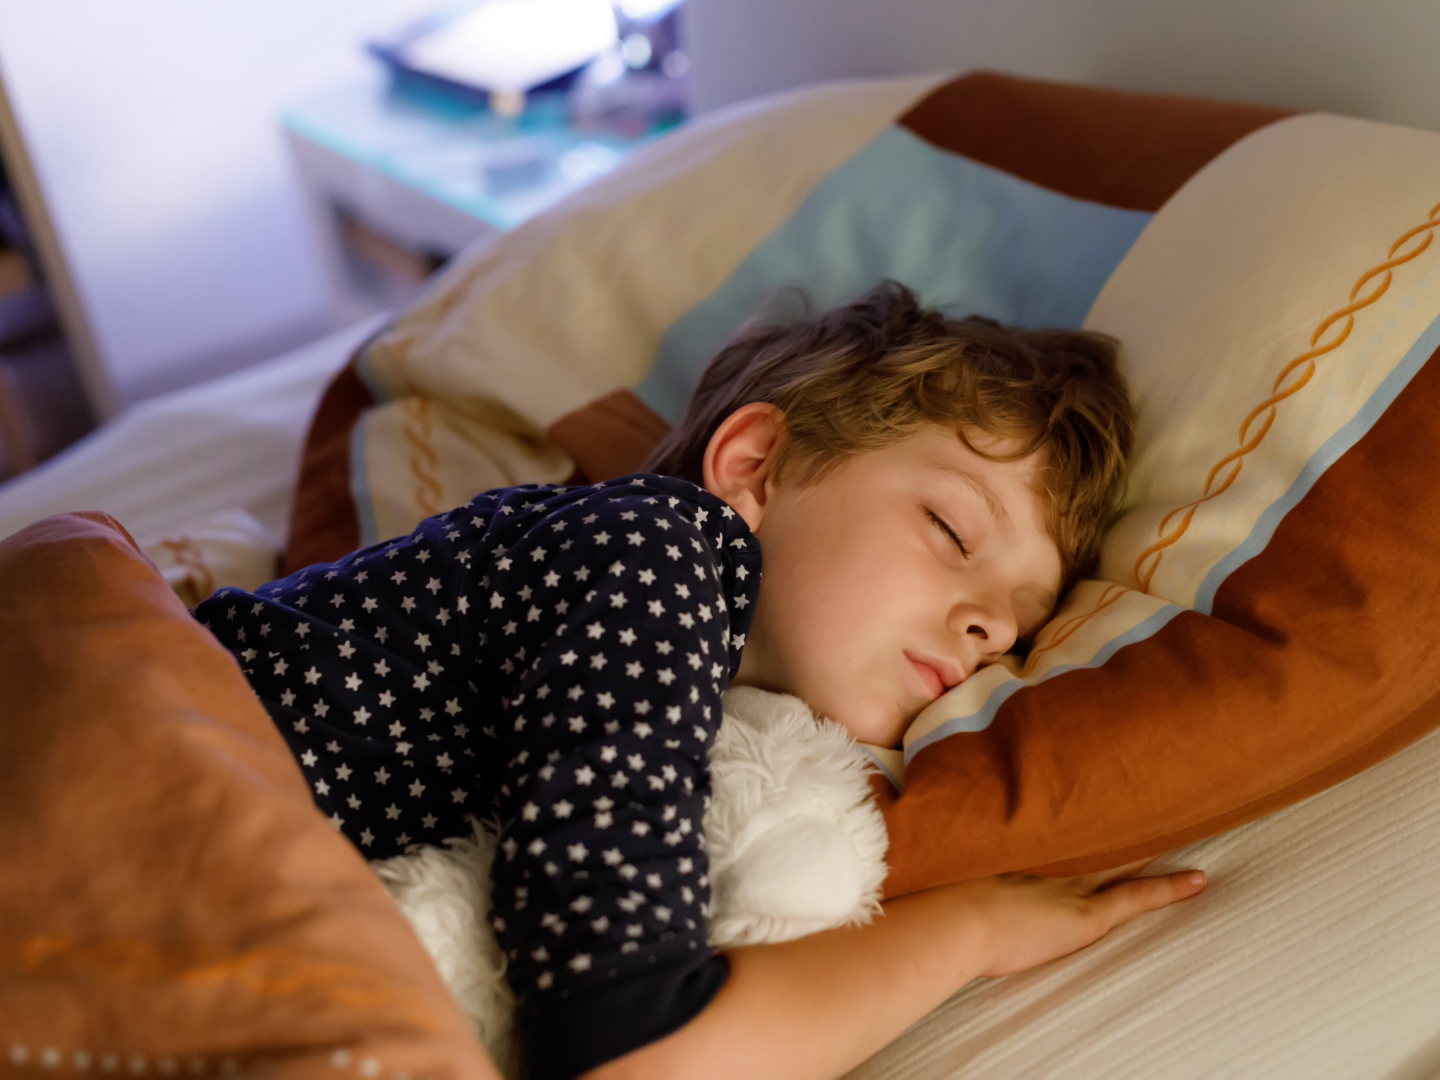 Child sleeping in bed getting good sleep